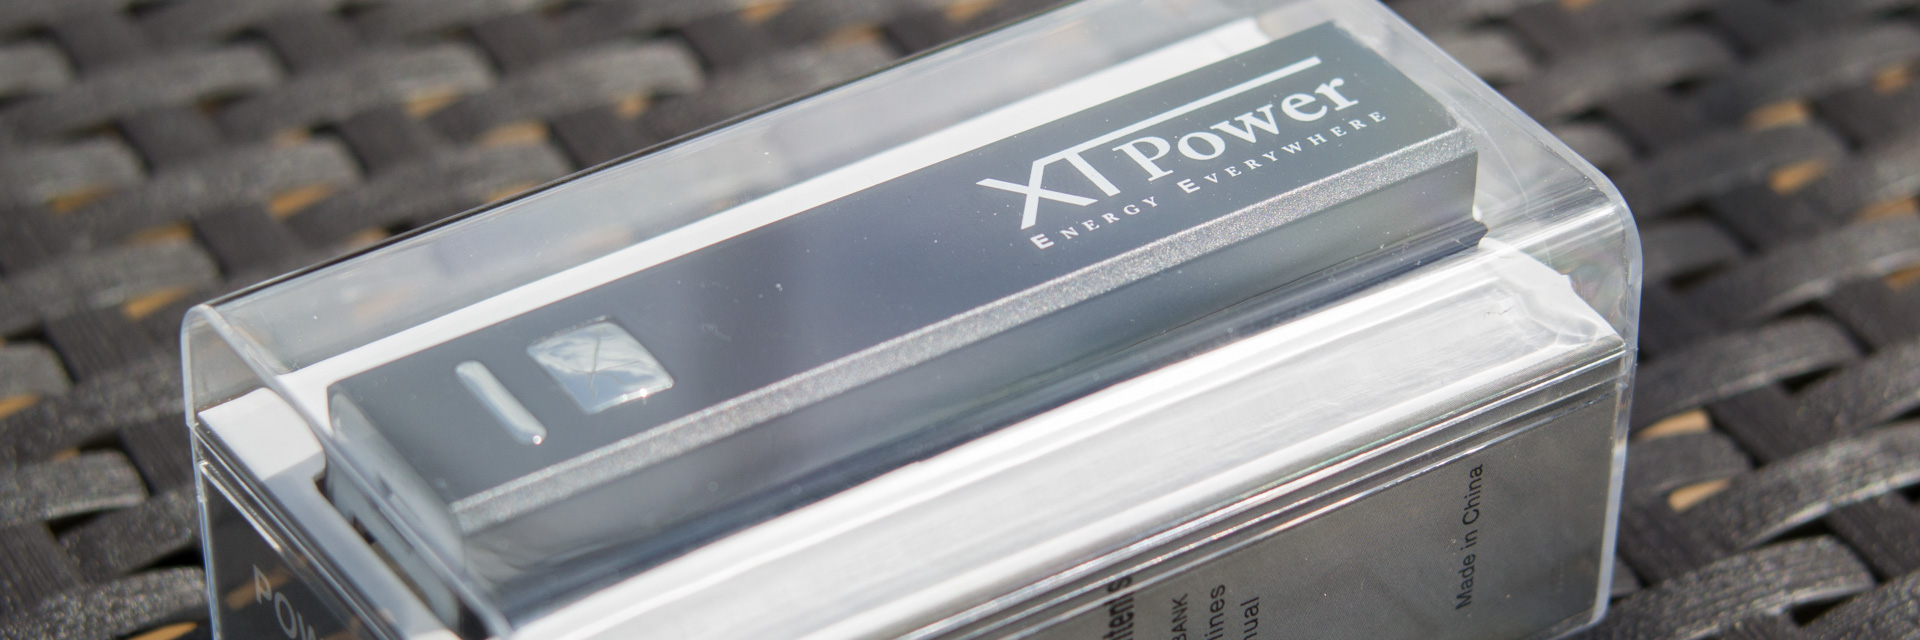 Review XTPower XT-2600 Powerbank